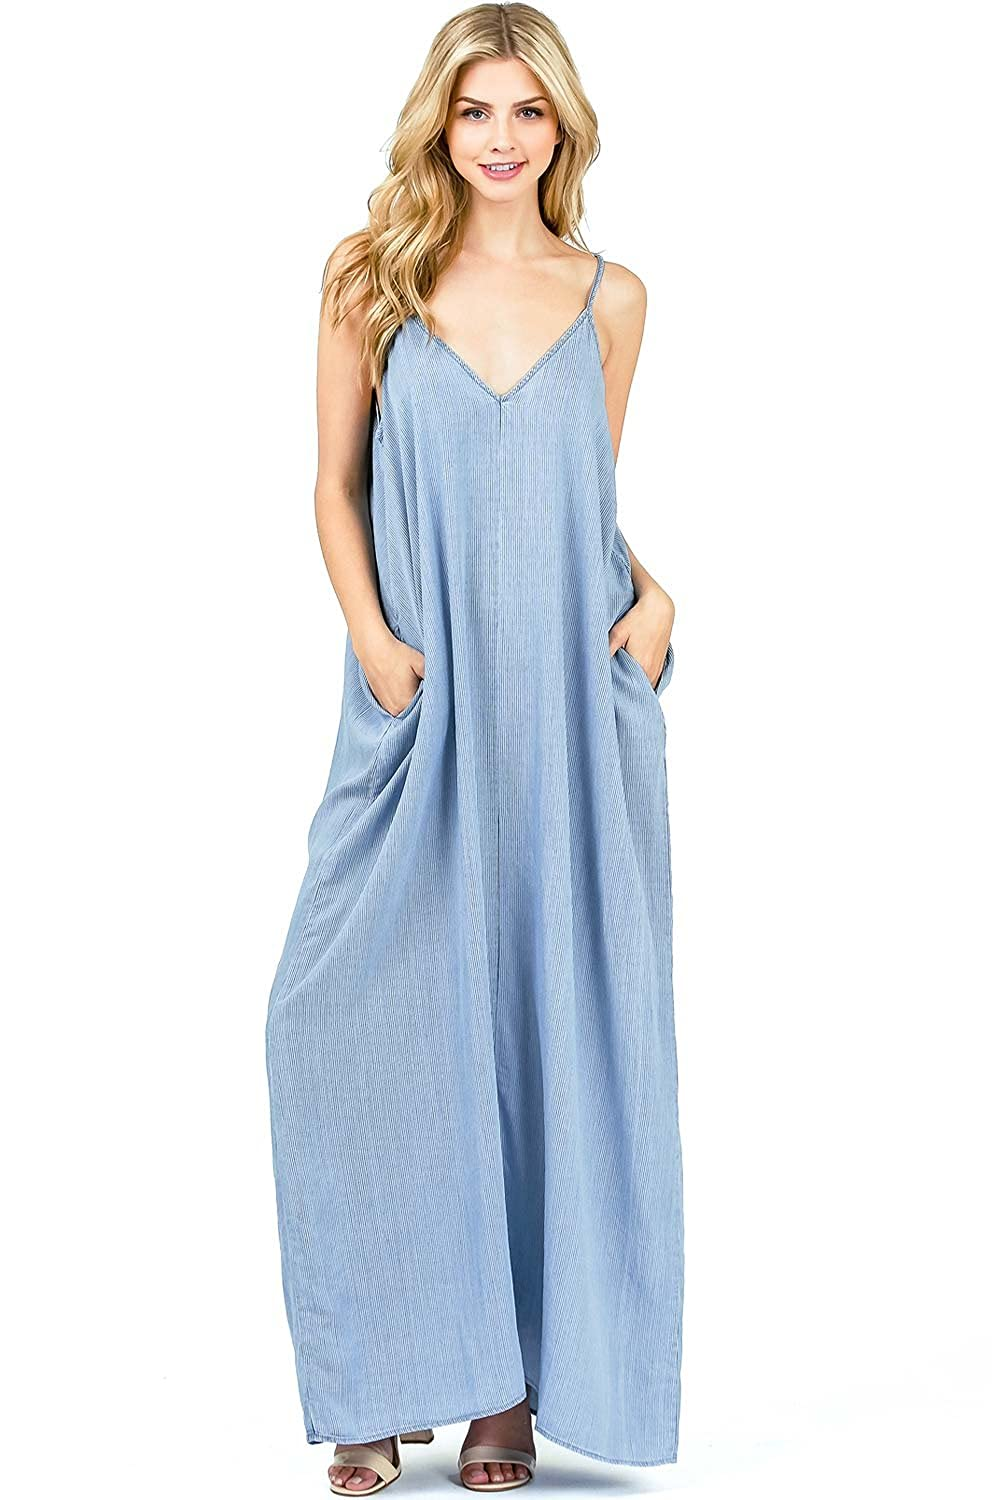 e1f351fb6a9 Beautiful maxi dress with a billowy silhouette and light chambray feel.  Adjustable straps and convenient pockets on the sides. A definite must have  for the ...